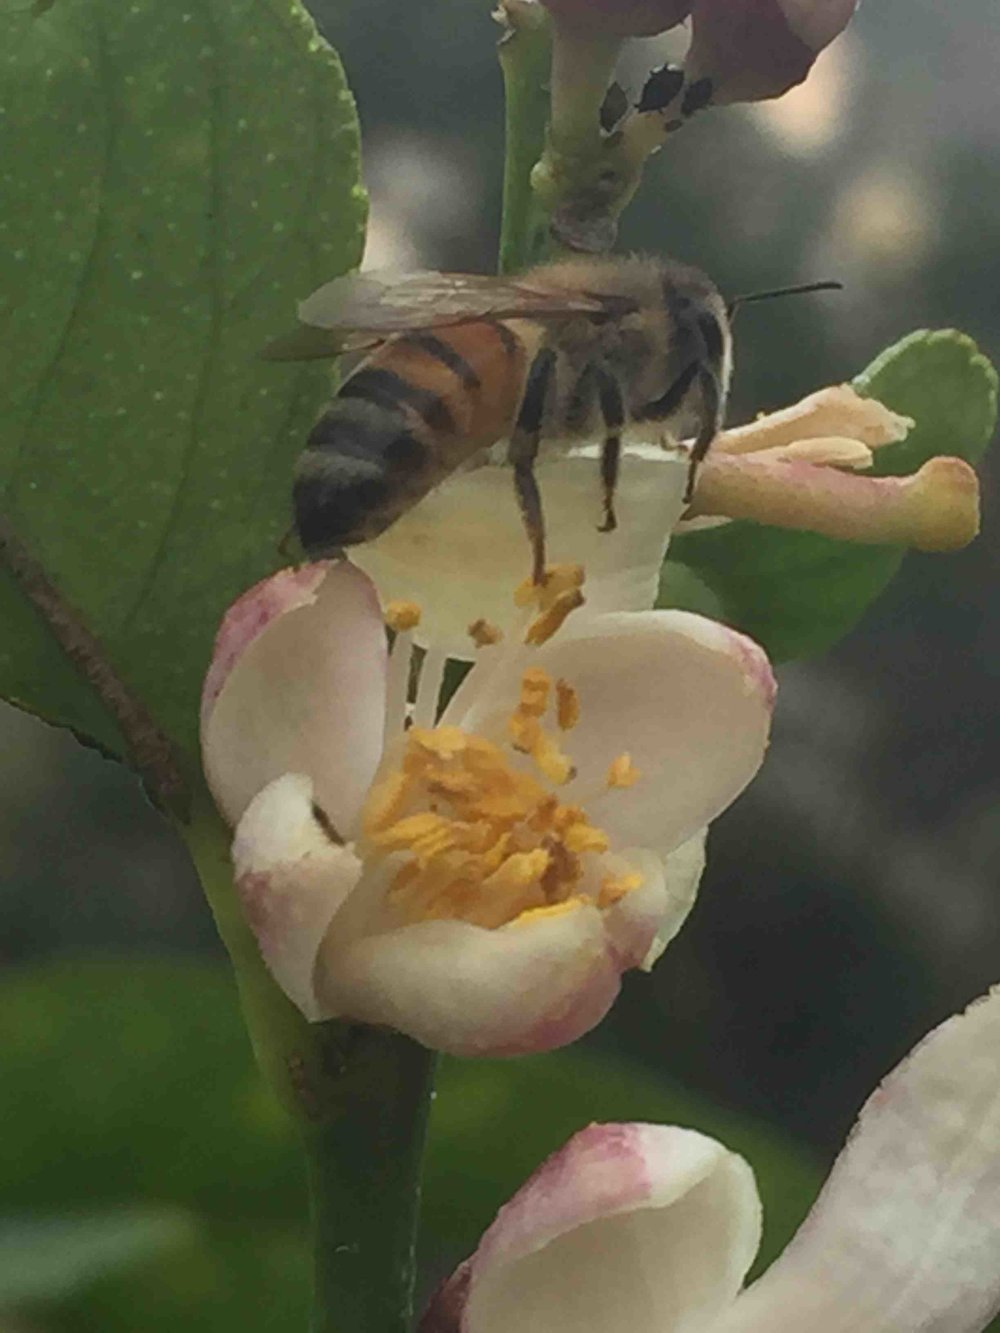 Honeybee napping on lemon blossom petal.